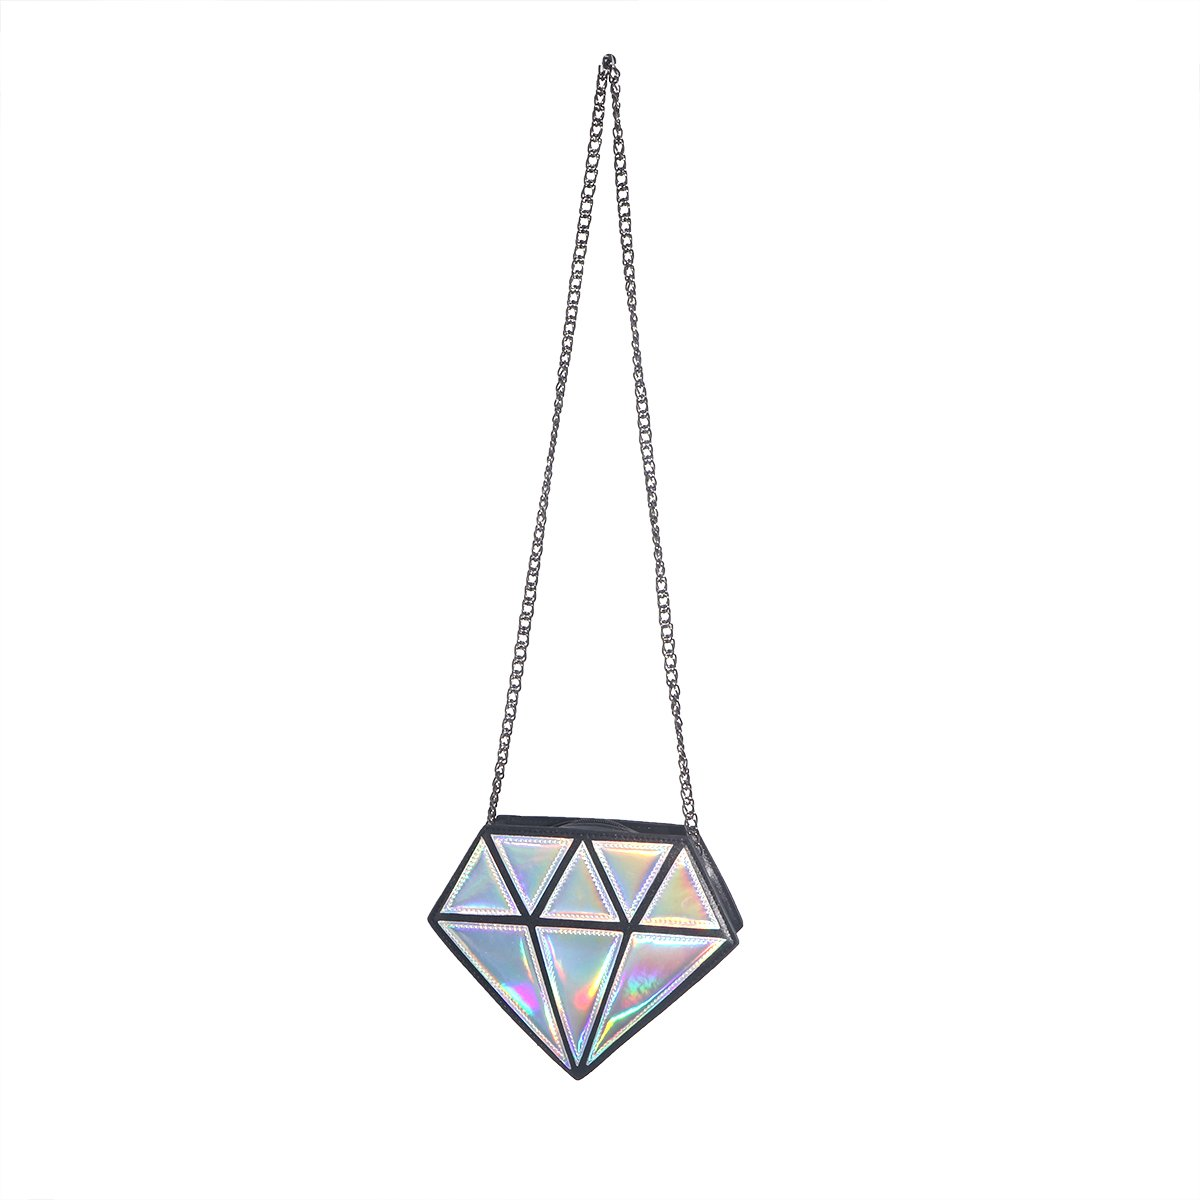 OULII Hologram Shoulder Bags Crossbody Bag PU Leather Bag Diamond Small for Womens Silver